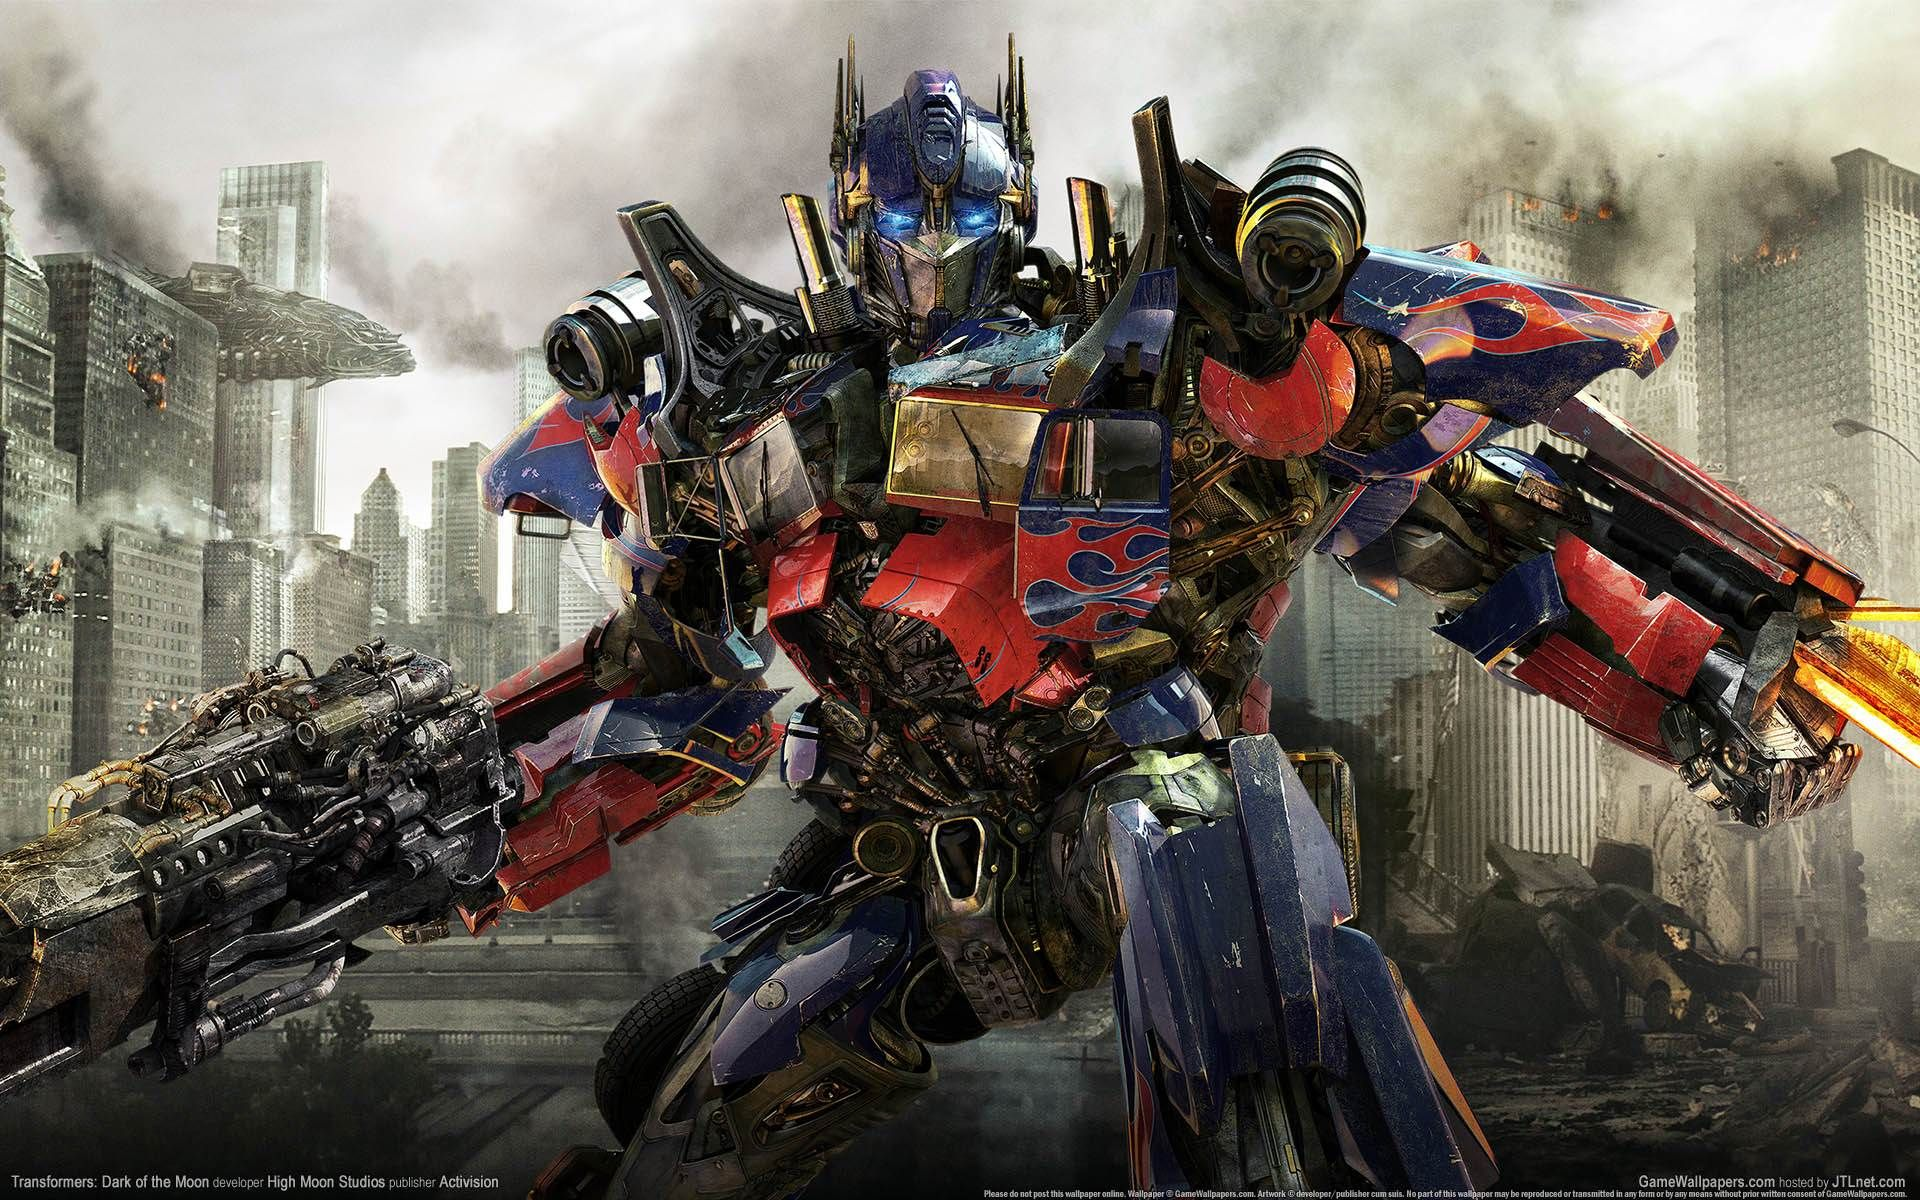 hd transformers wallpapers uamp; backgrounds for free download 1920